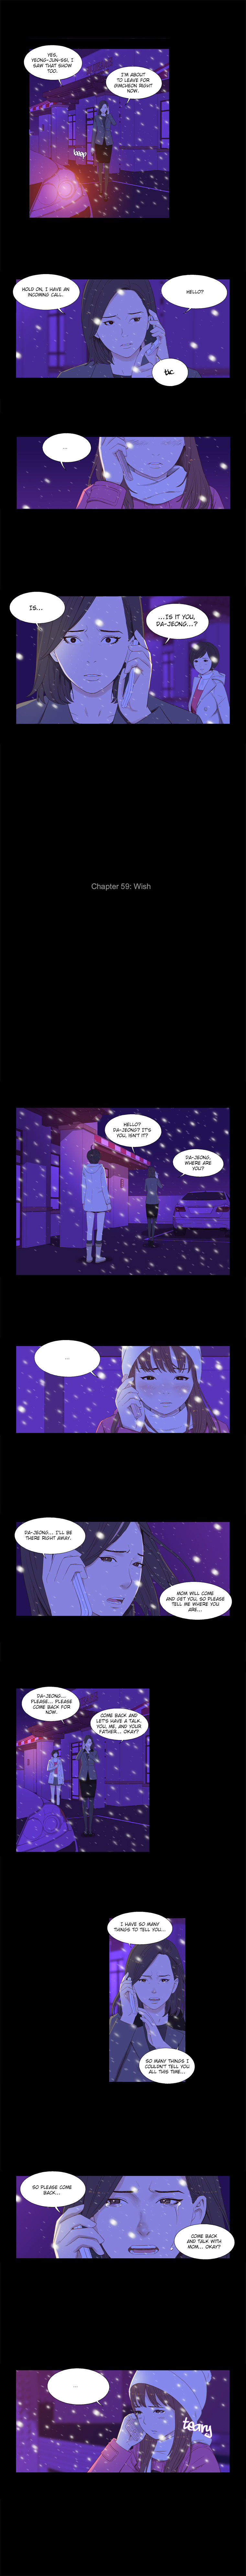 The Friendly Winter 59 Page 1